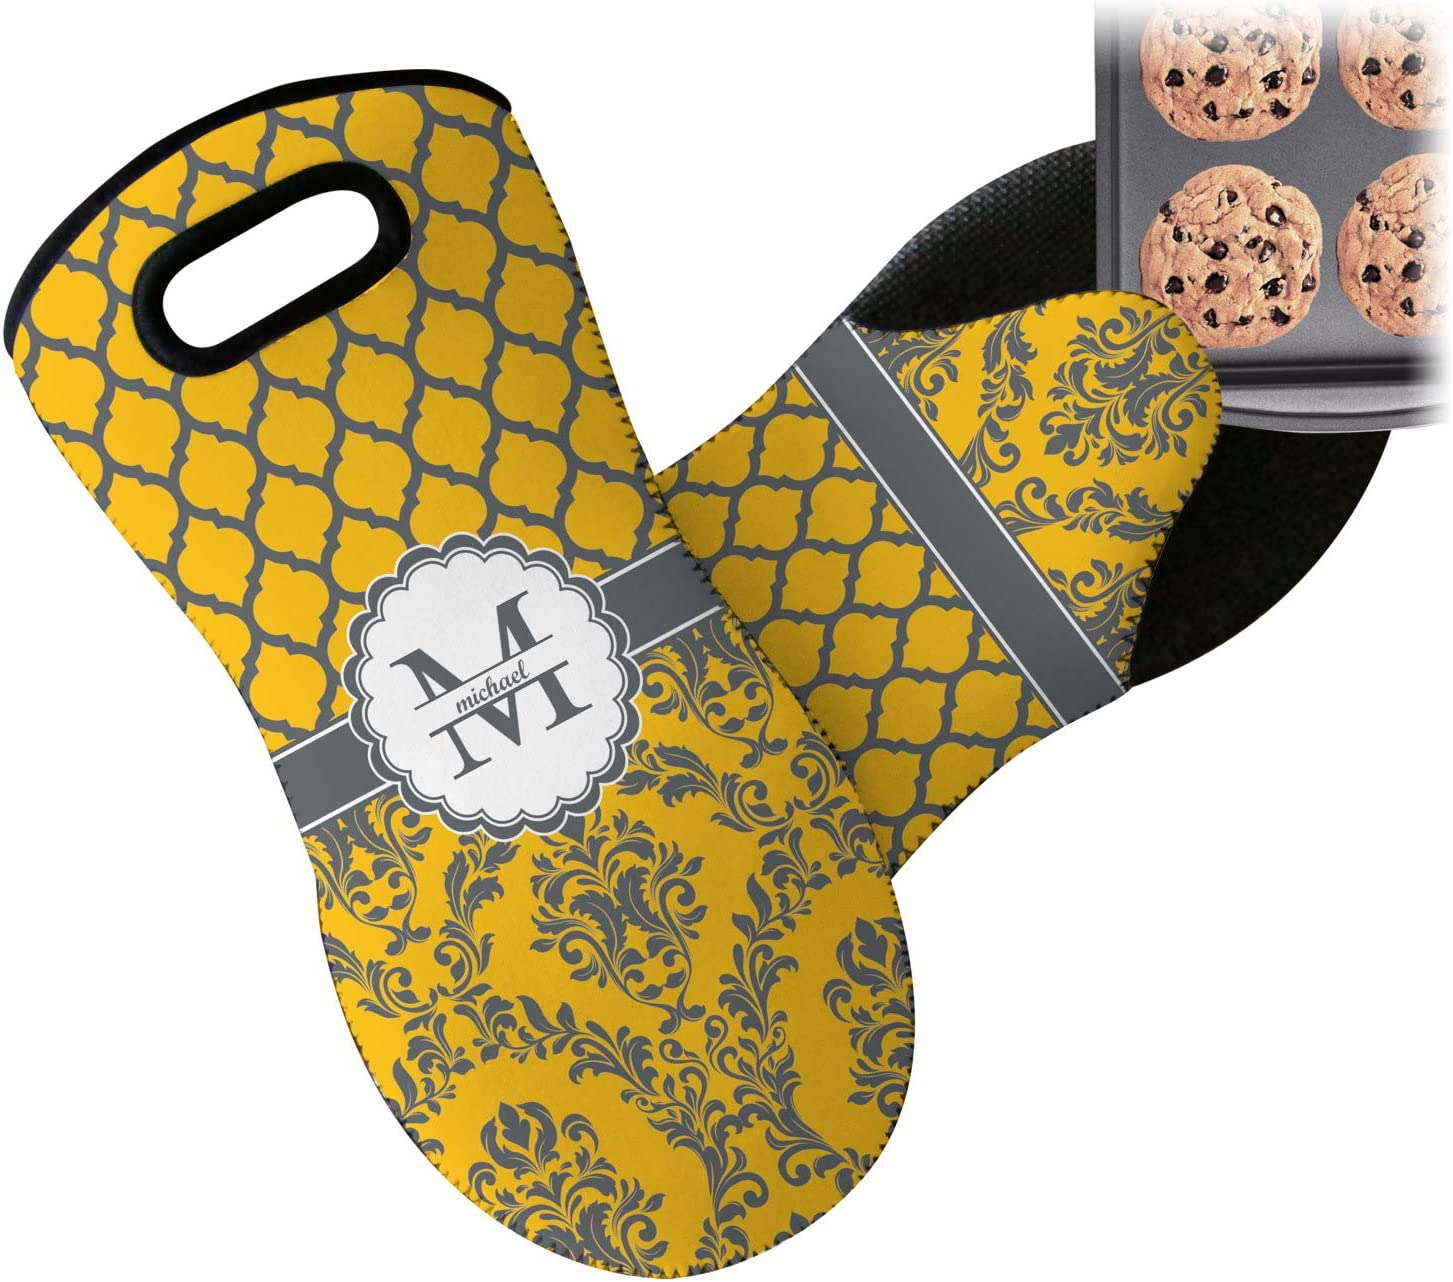 RNK Shops Damask & Moroccan Neoprene Oven Mitt (Personalized)